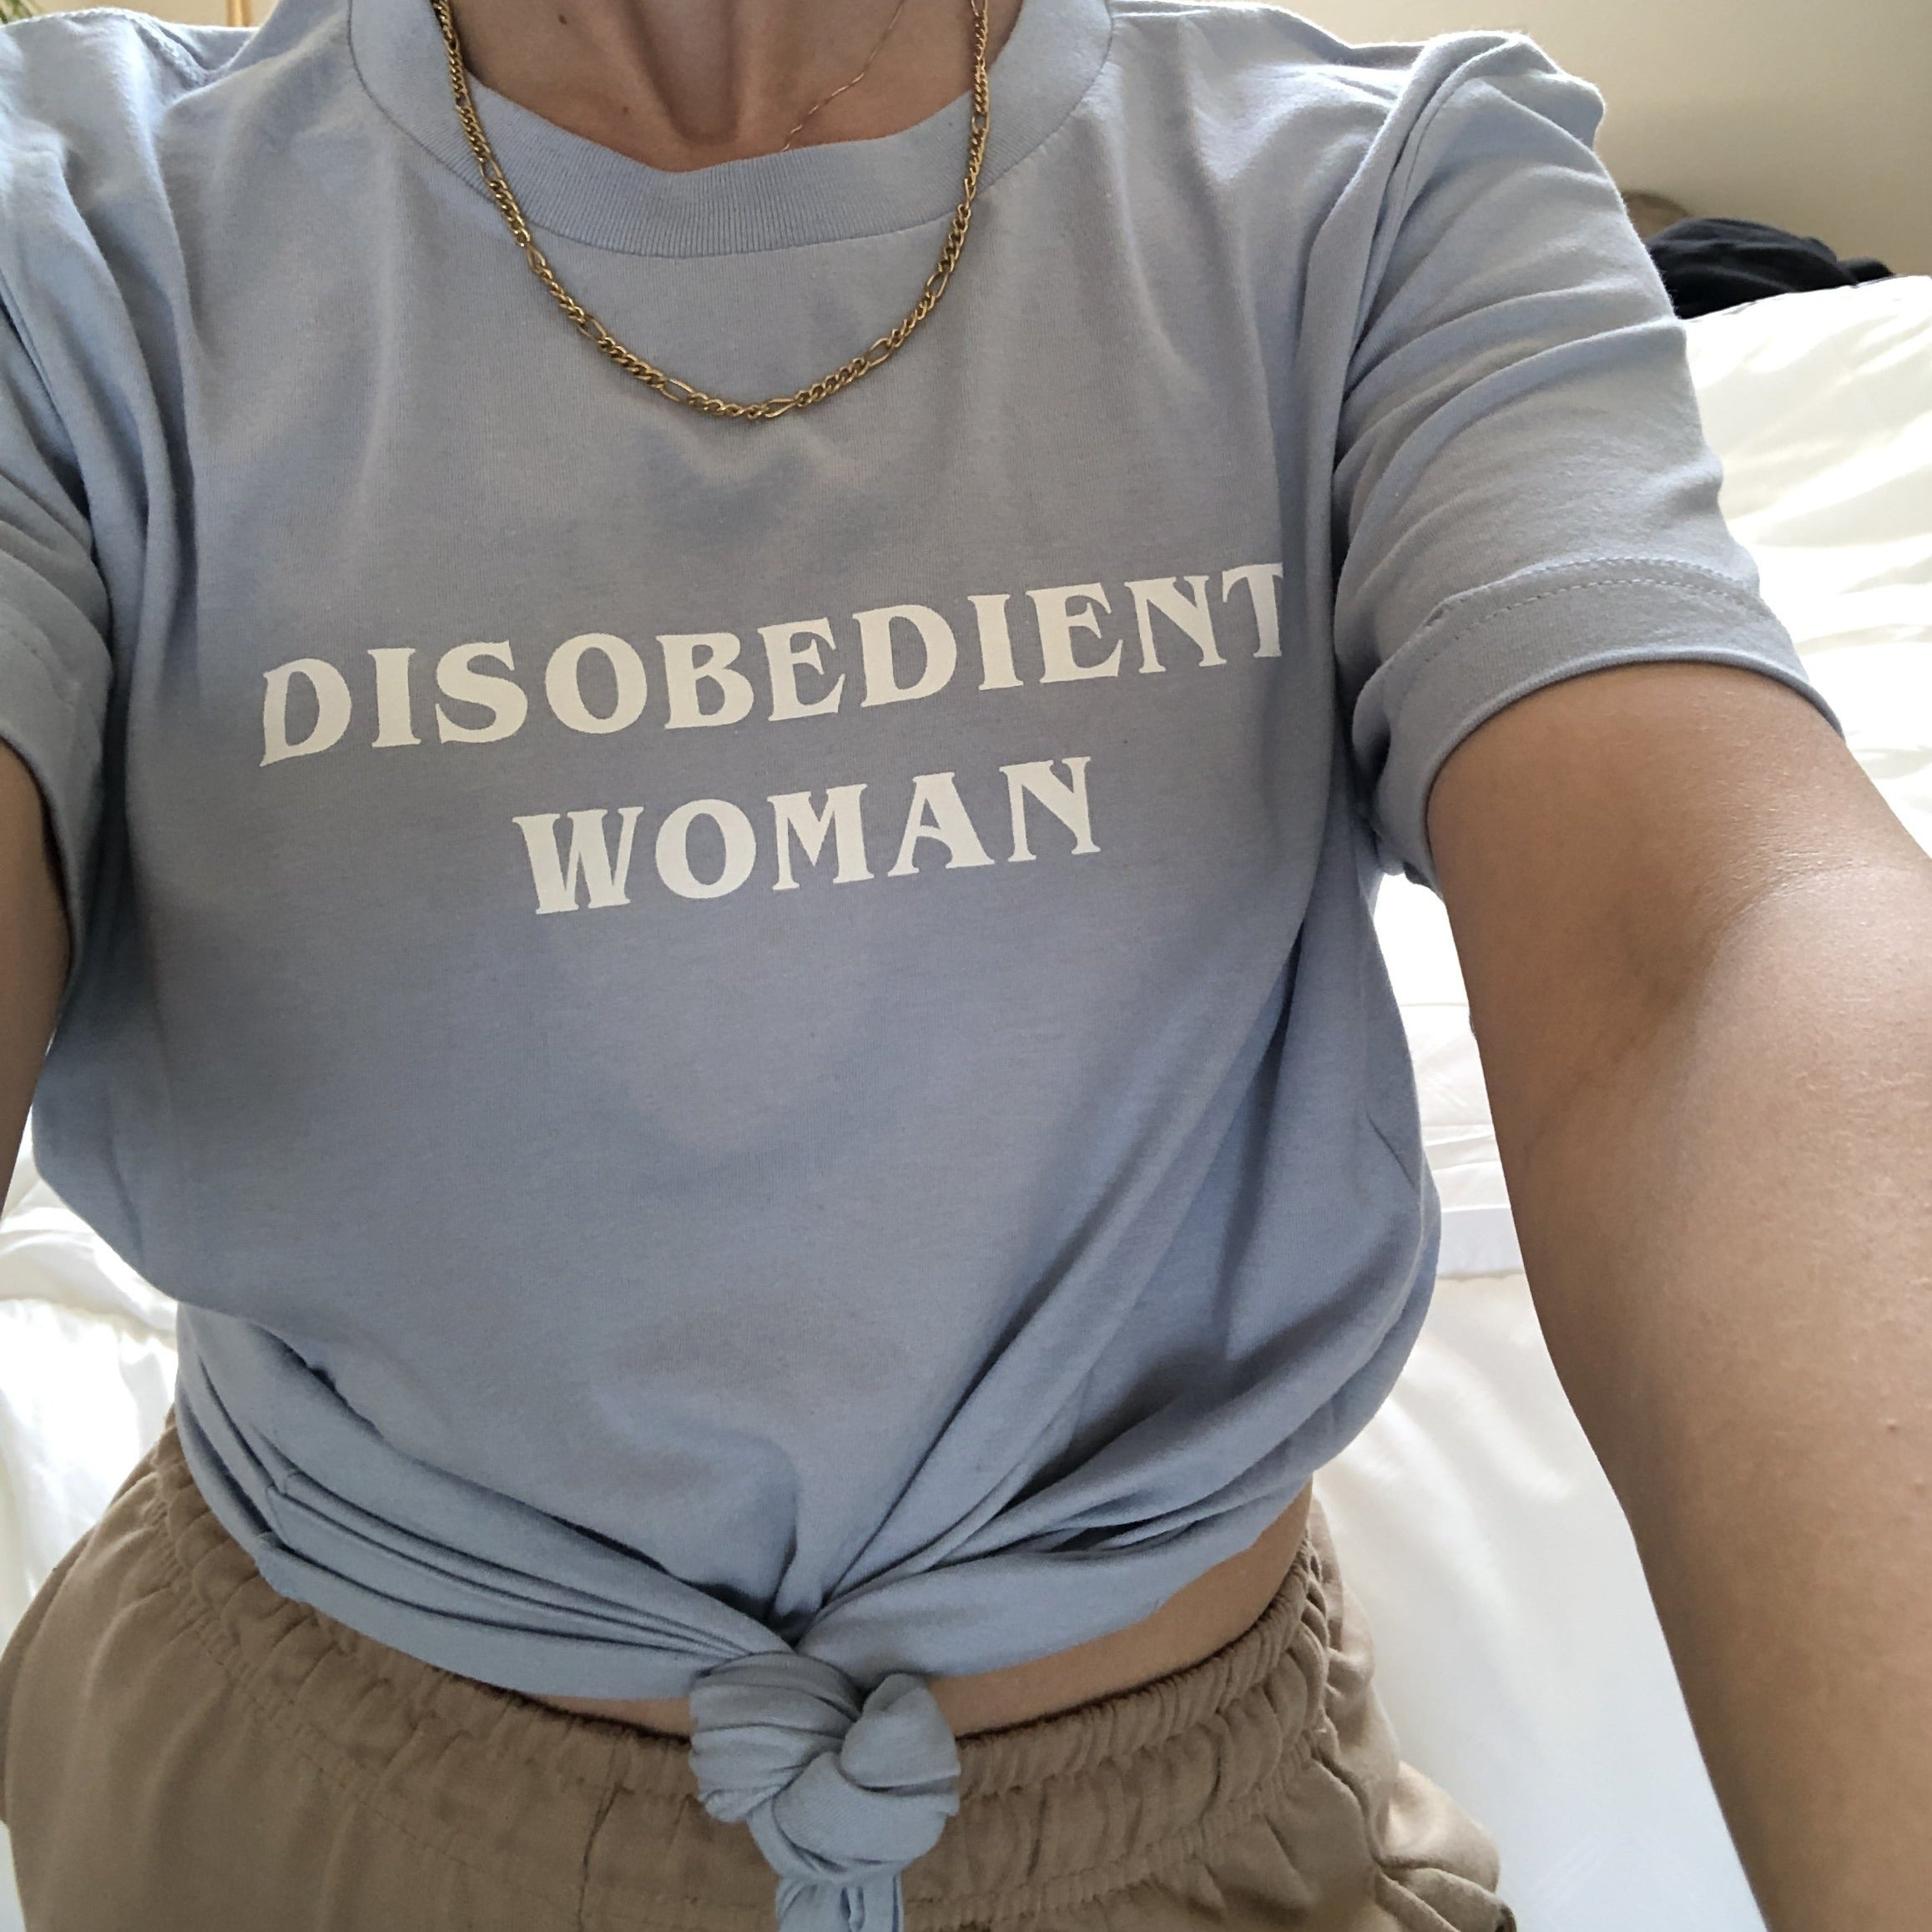 Disobedient Woman Tee